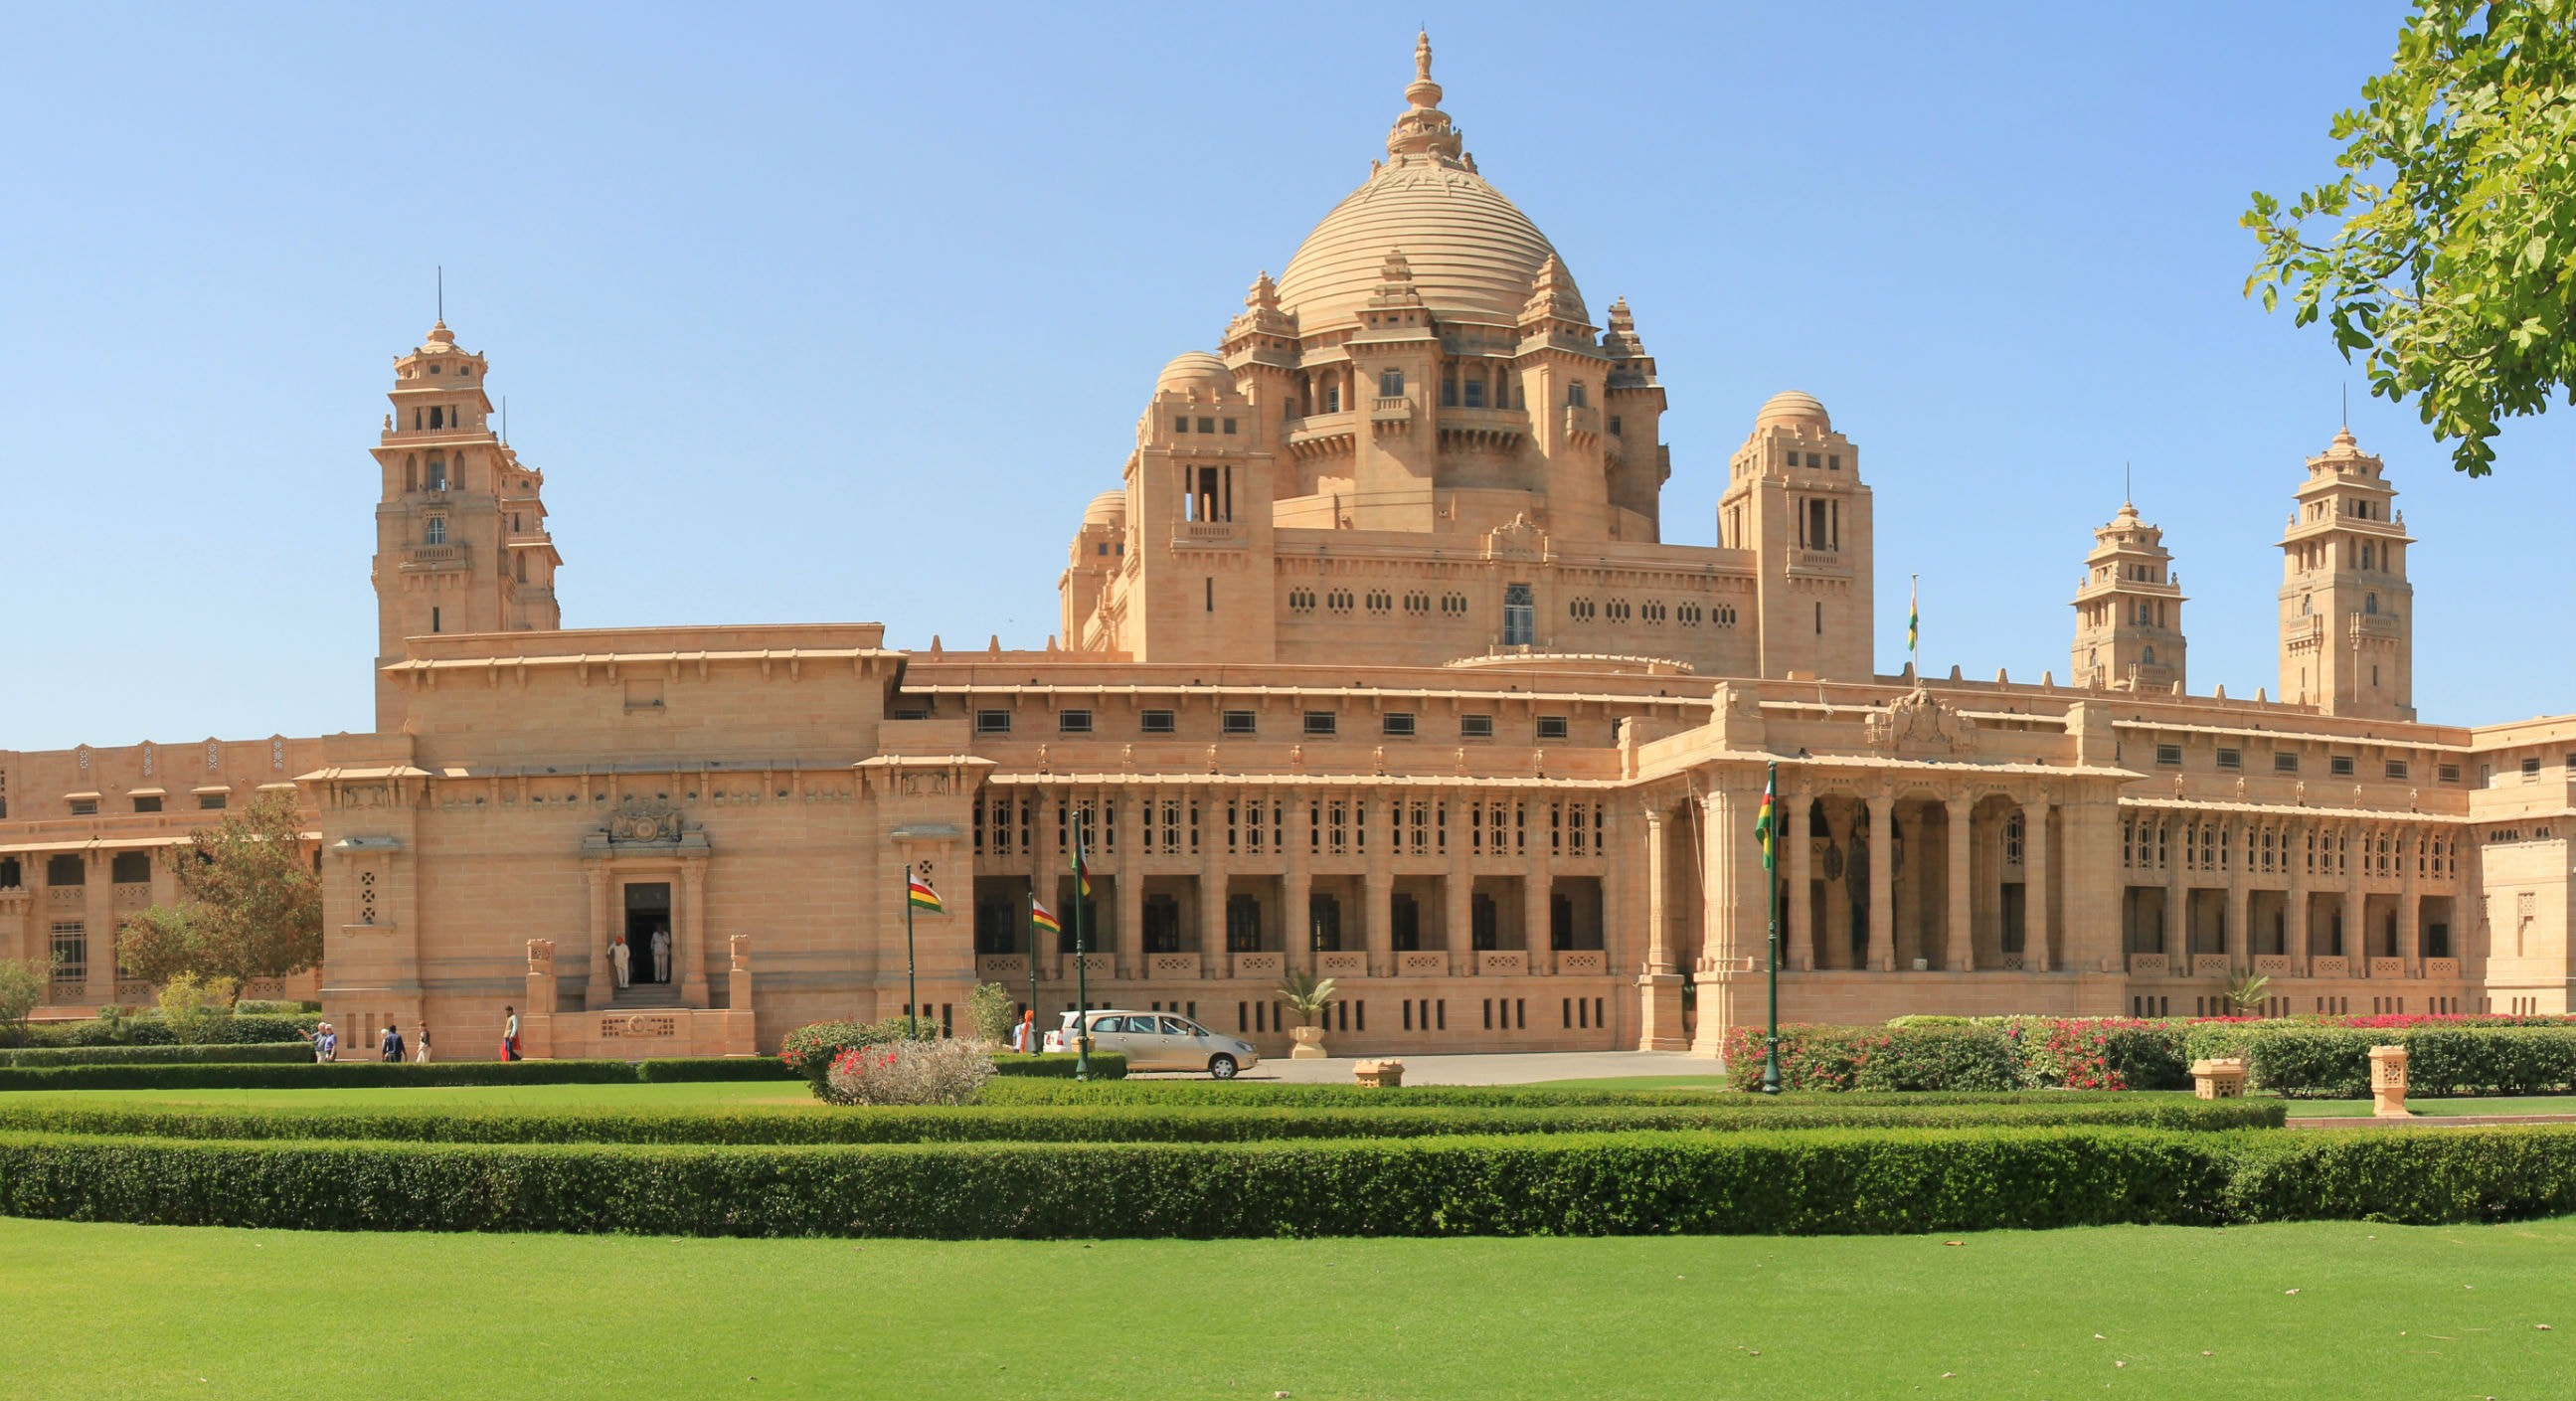 The Umaid Bhawan Palace complex still houses the private residence of the Rathore royal family